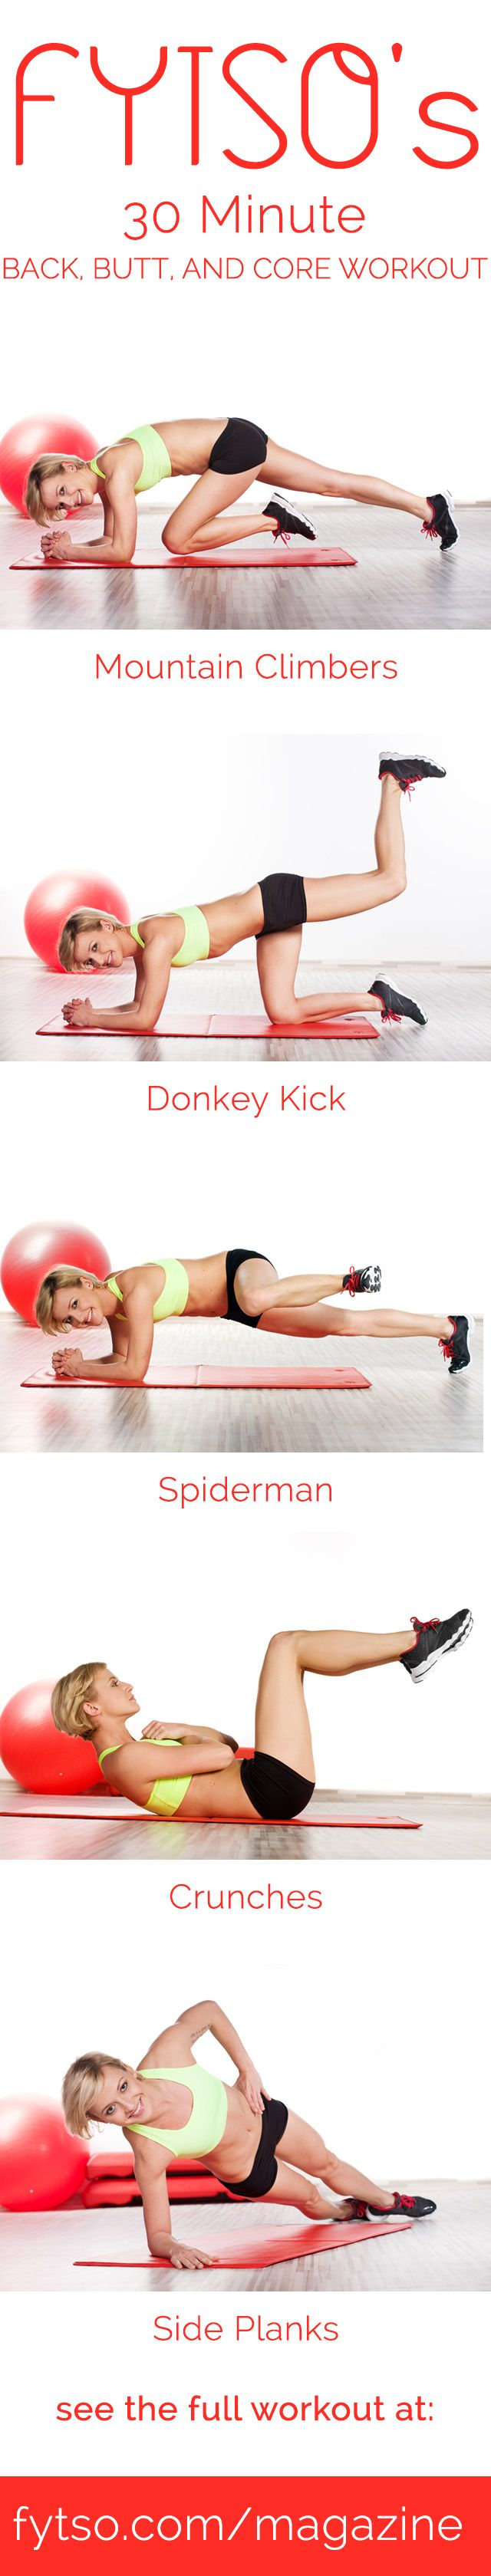 Everyone wants a toned core and buns of steel so it makes sense to dedicate an entire 30 minute workout to those areas.